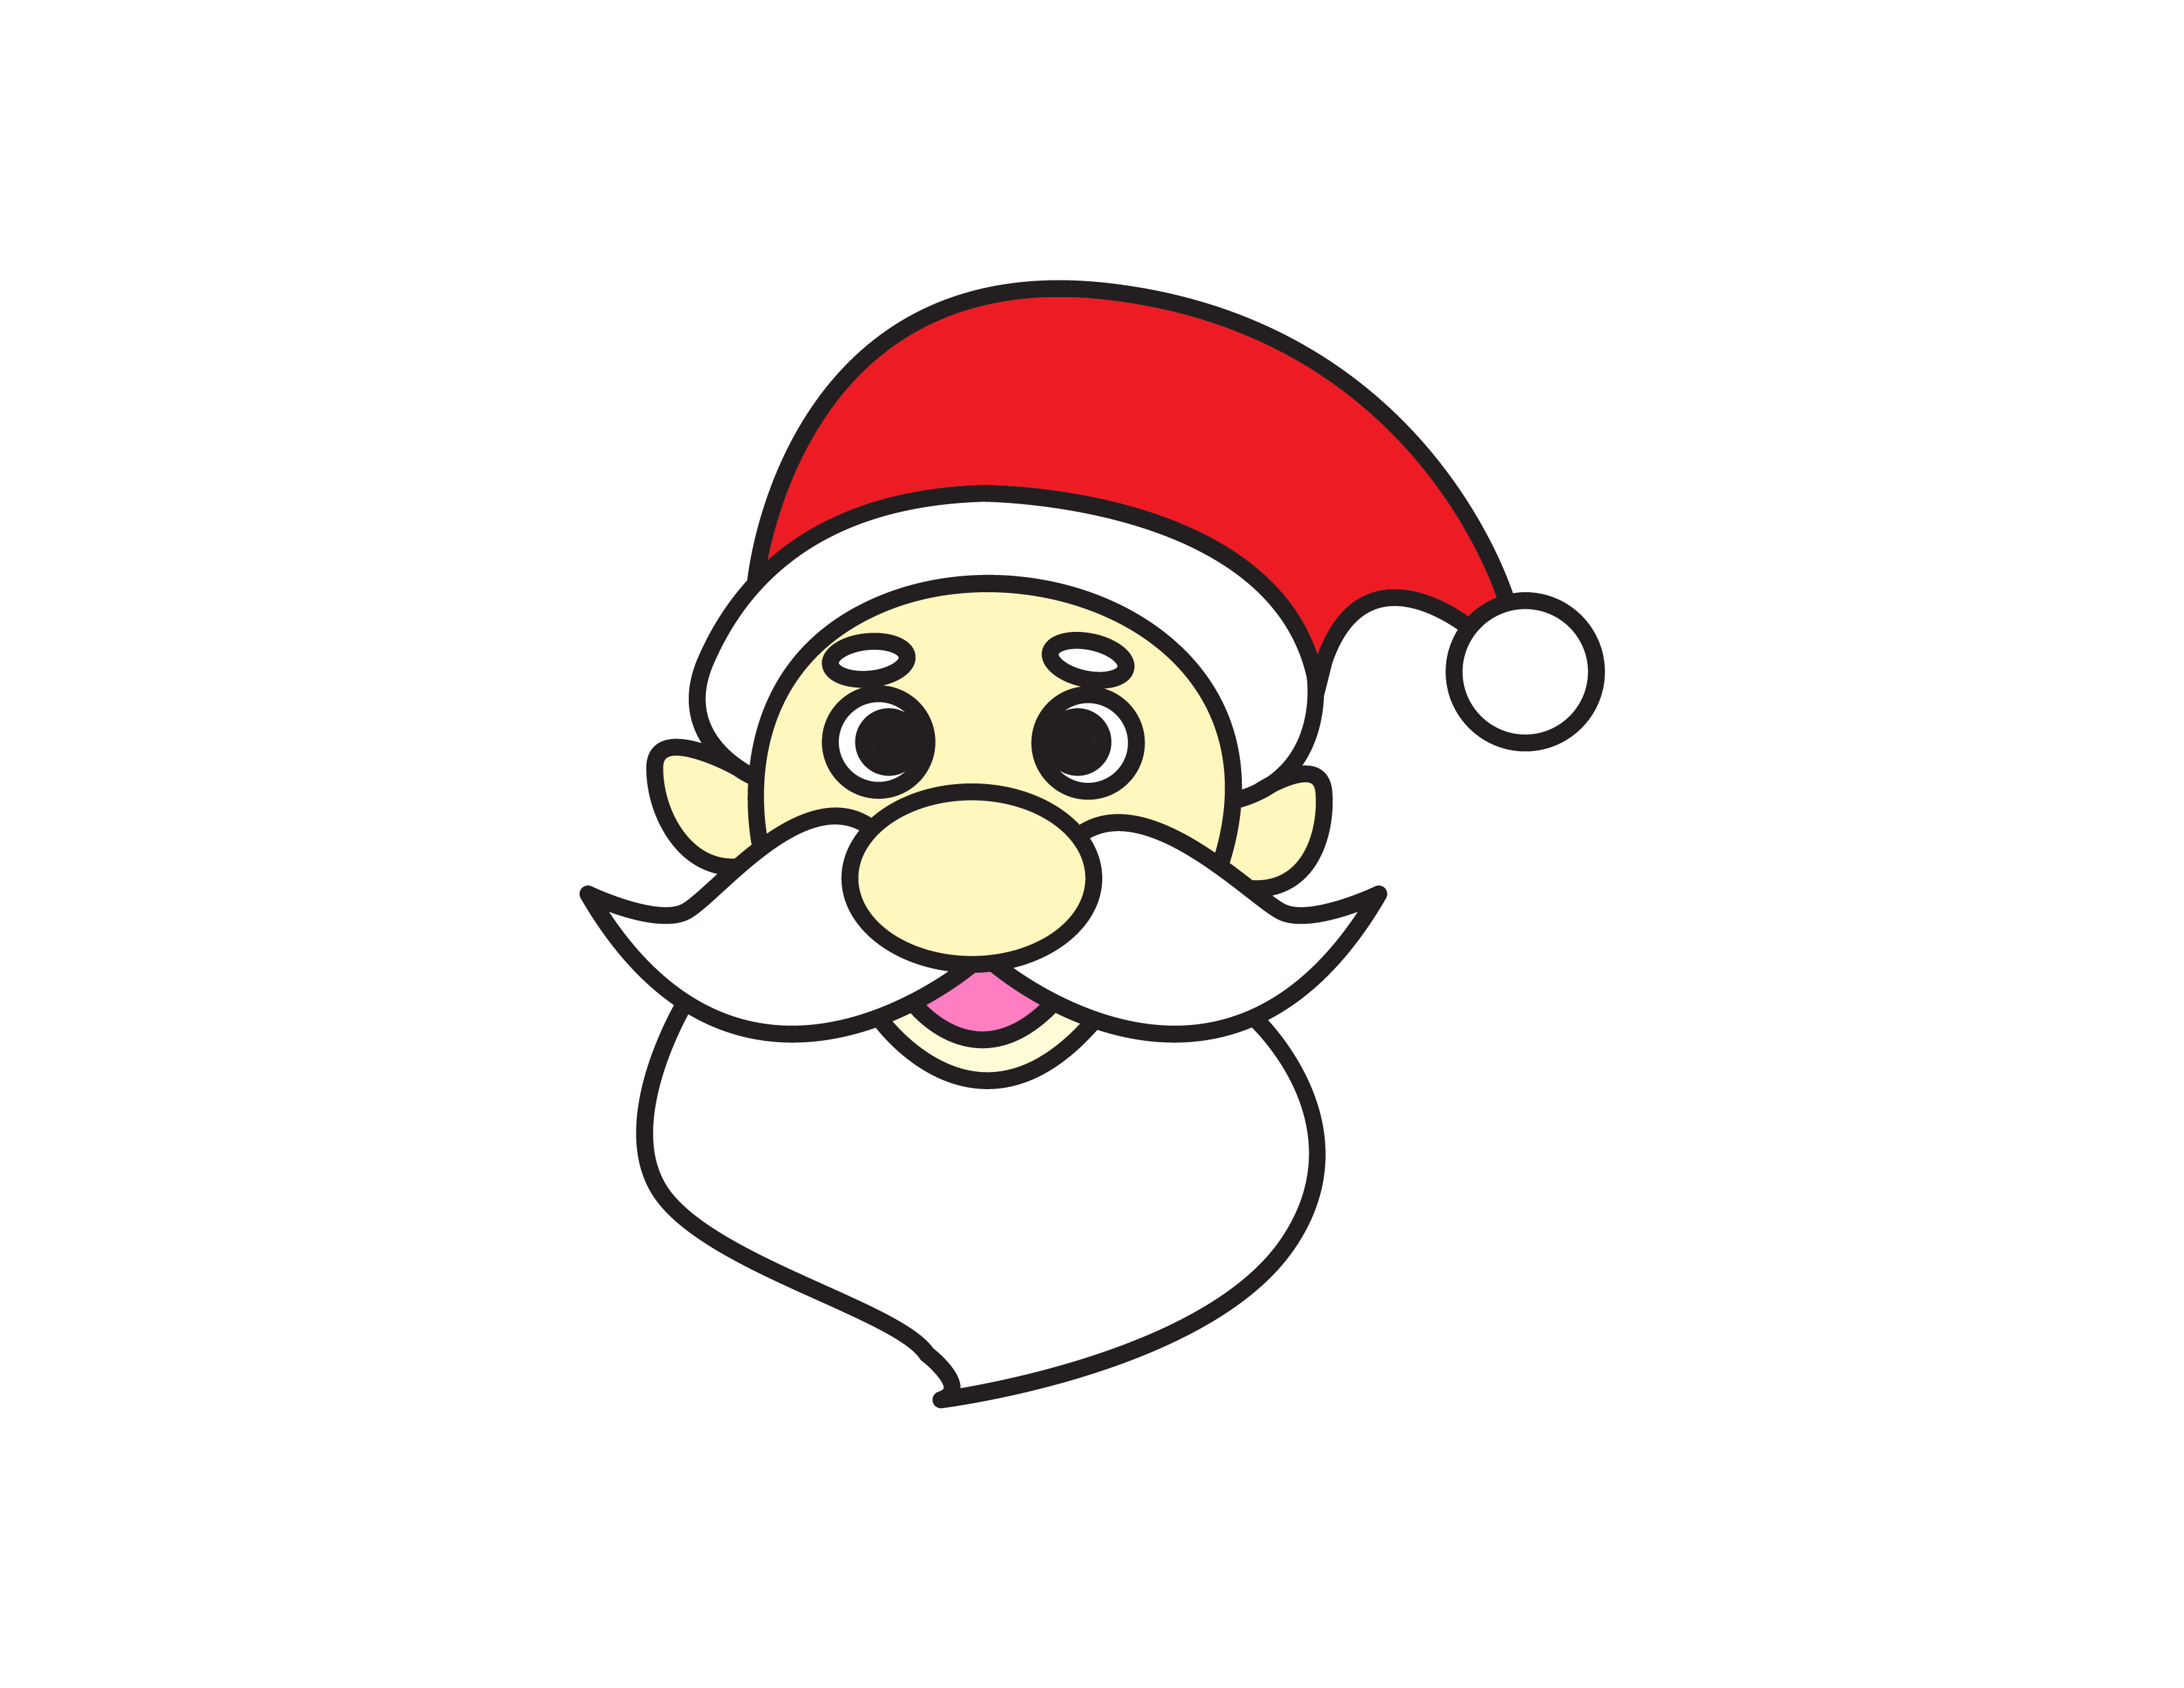 How To Draw a Cute Cartoon Santa Claus for Little Kiddies – Simple Guide